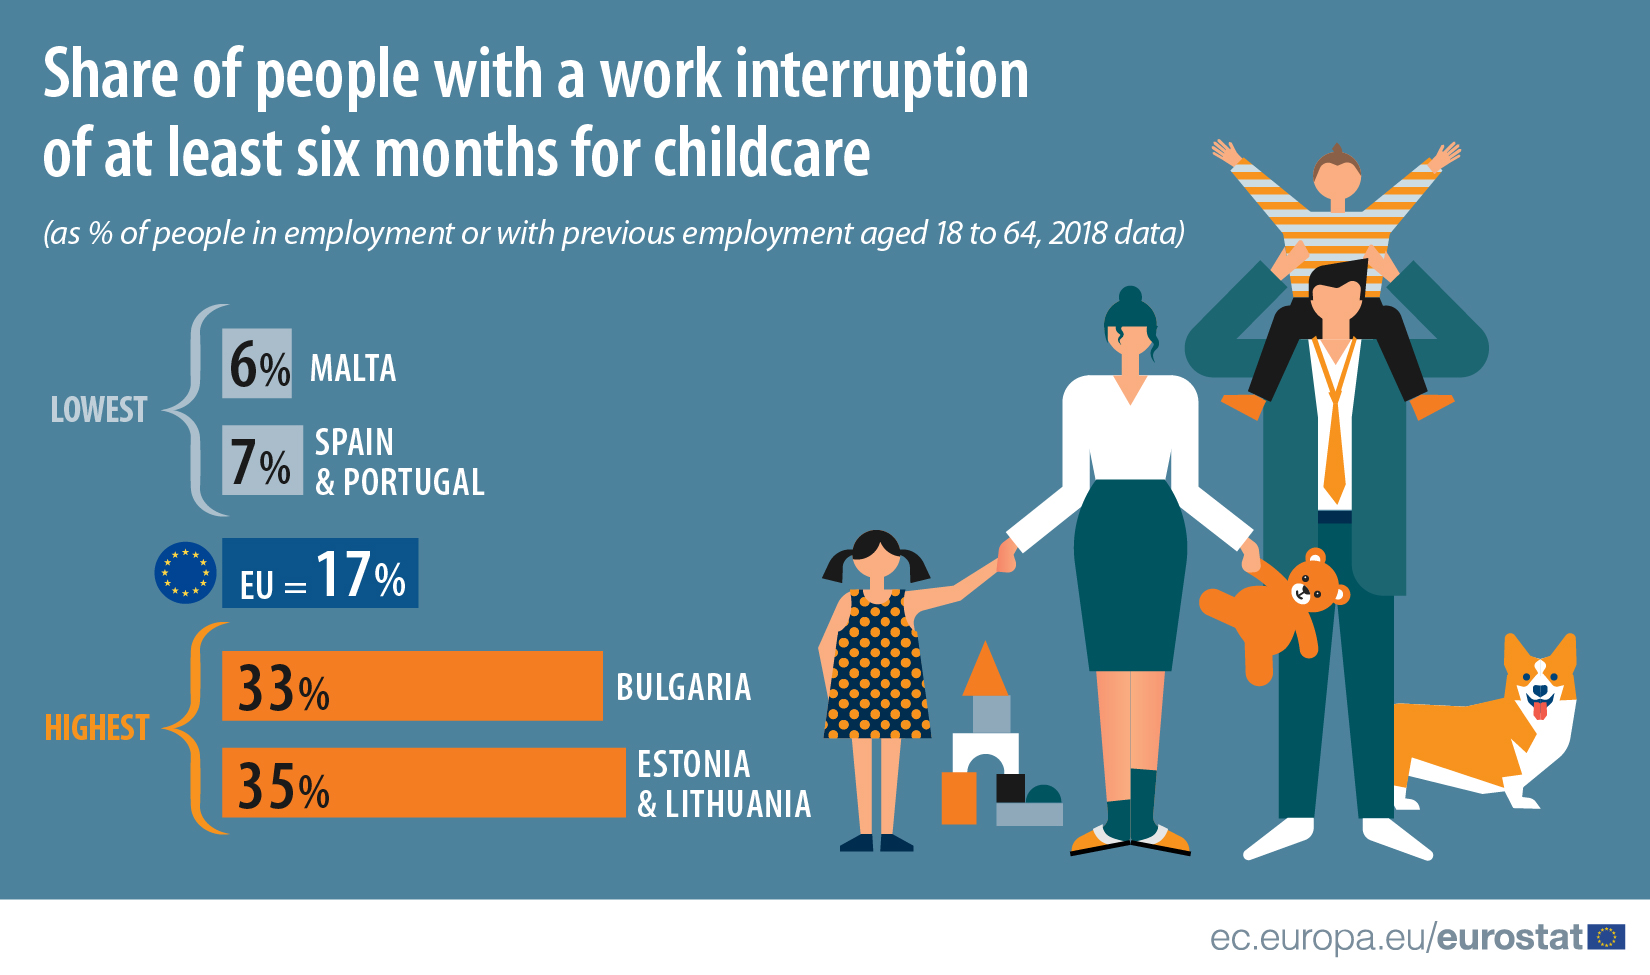 Share of people with a work interruption of at least six months for childcare